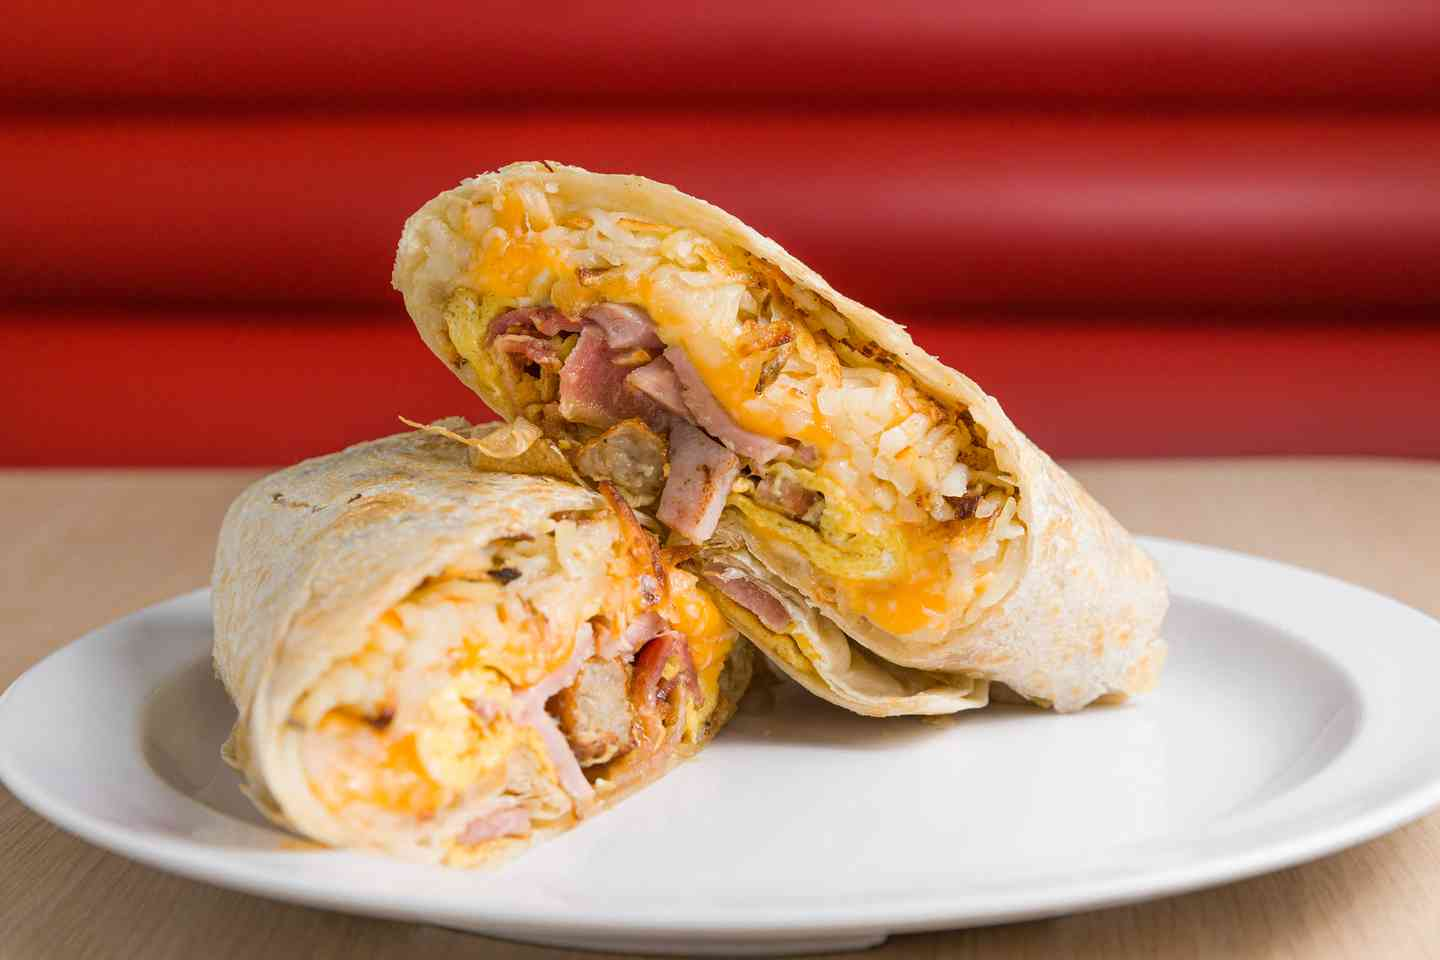 #1 Breakfast Burrito